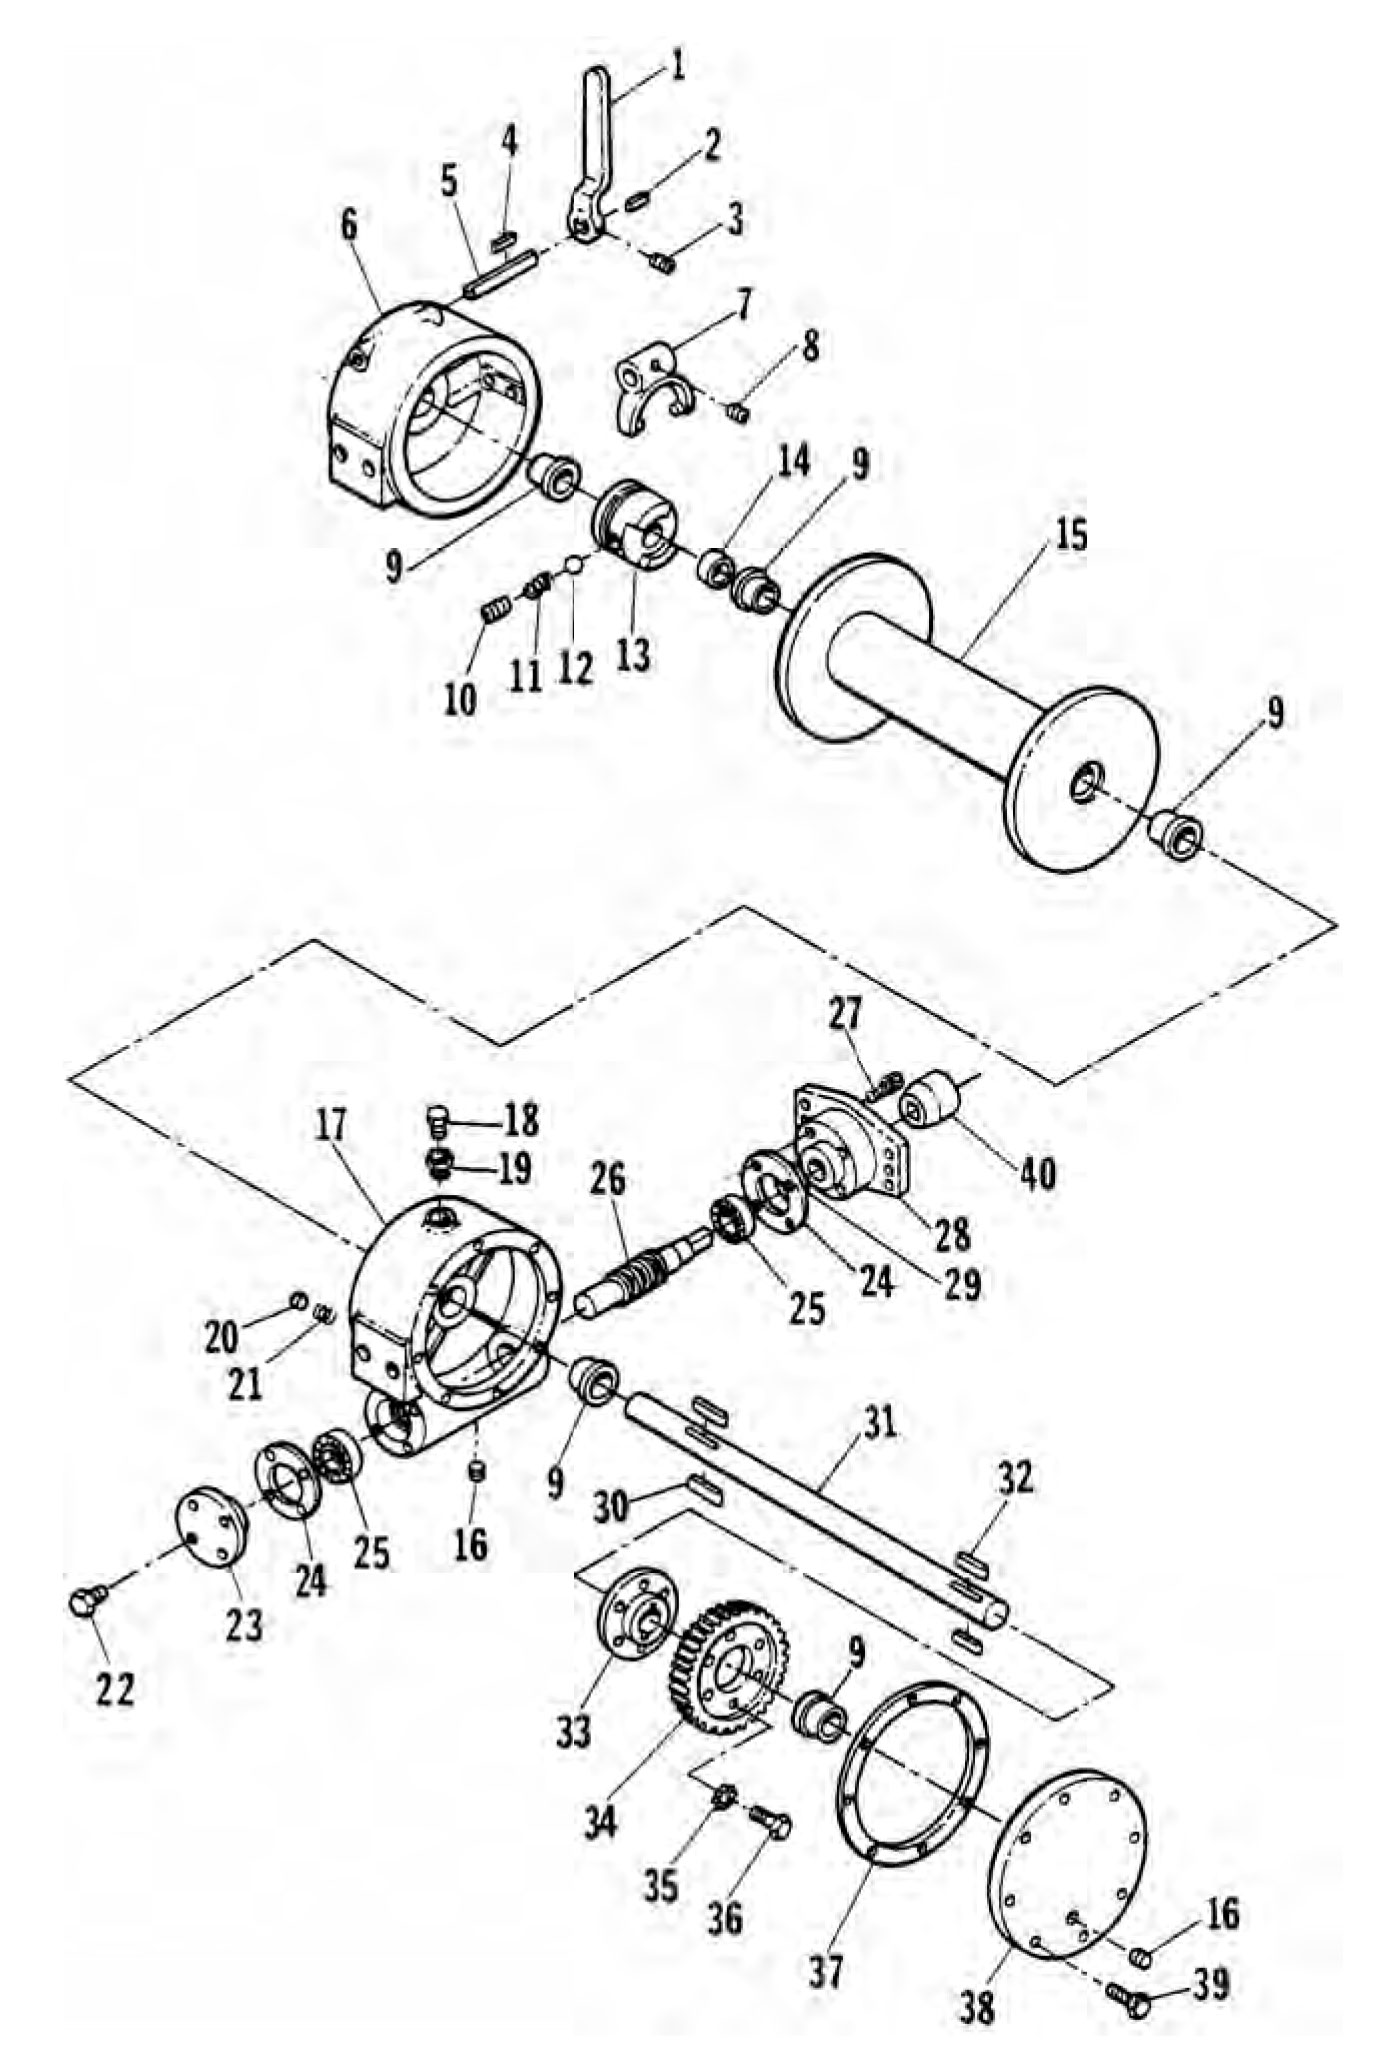 hight resolution of ramsey hydraulic winch parts diagram wiring library ramsey winch schematics 712 hydraulic winch assembly ramsey hydraulic